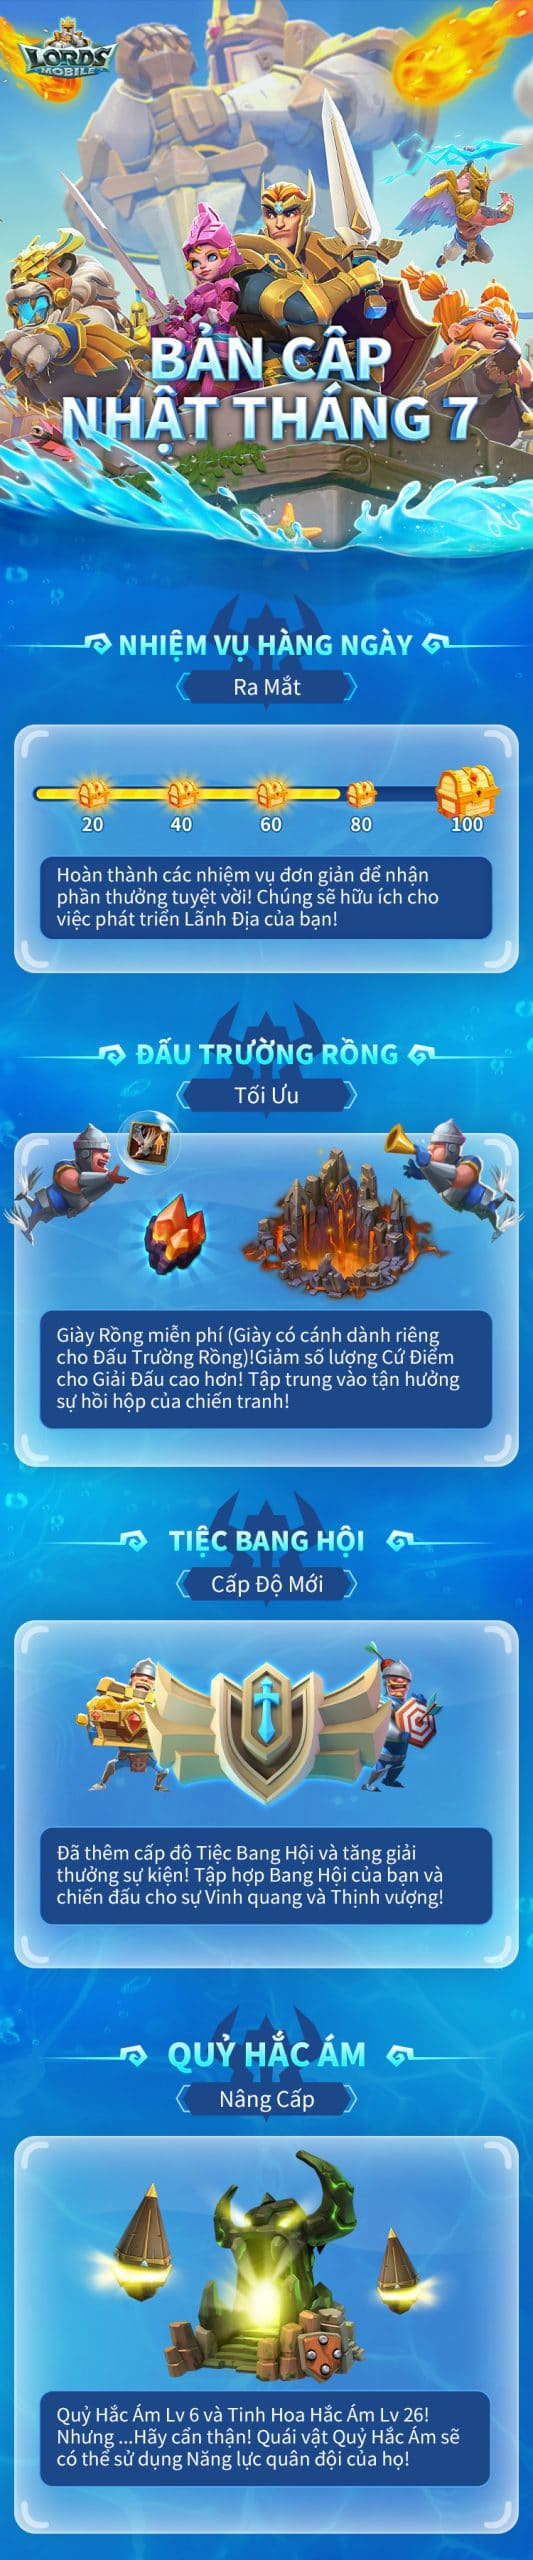 Lords Mobile Update tháng 7 2020